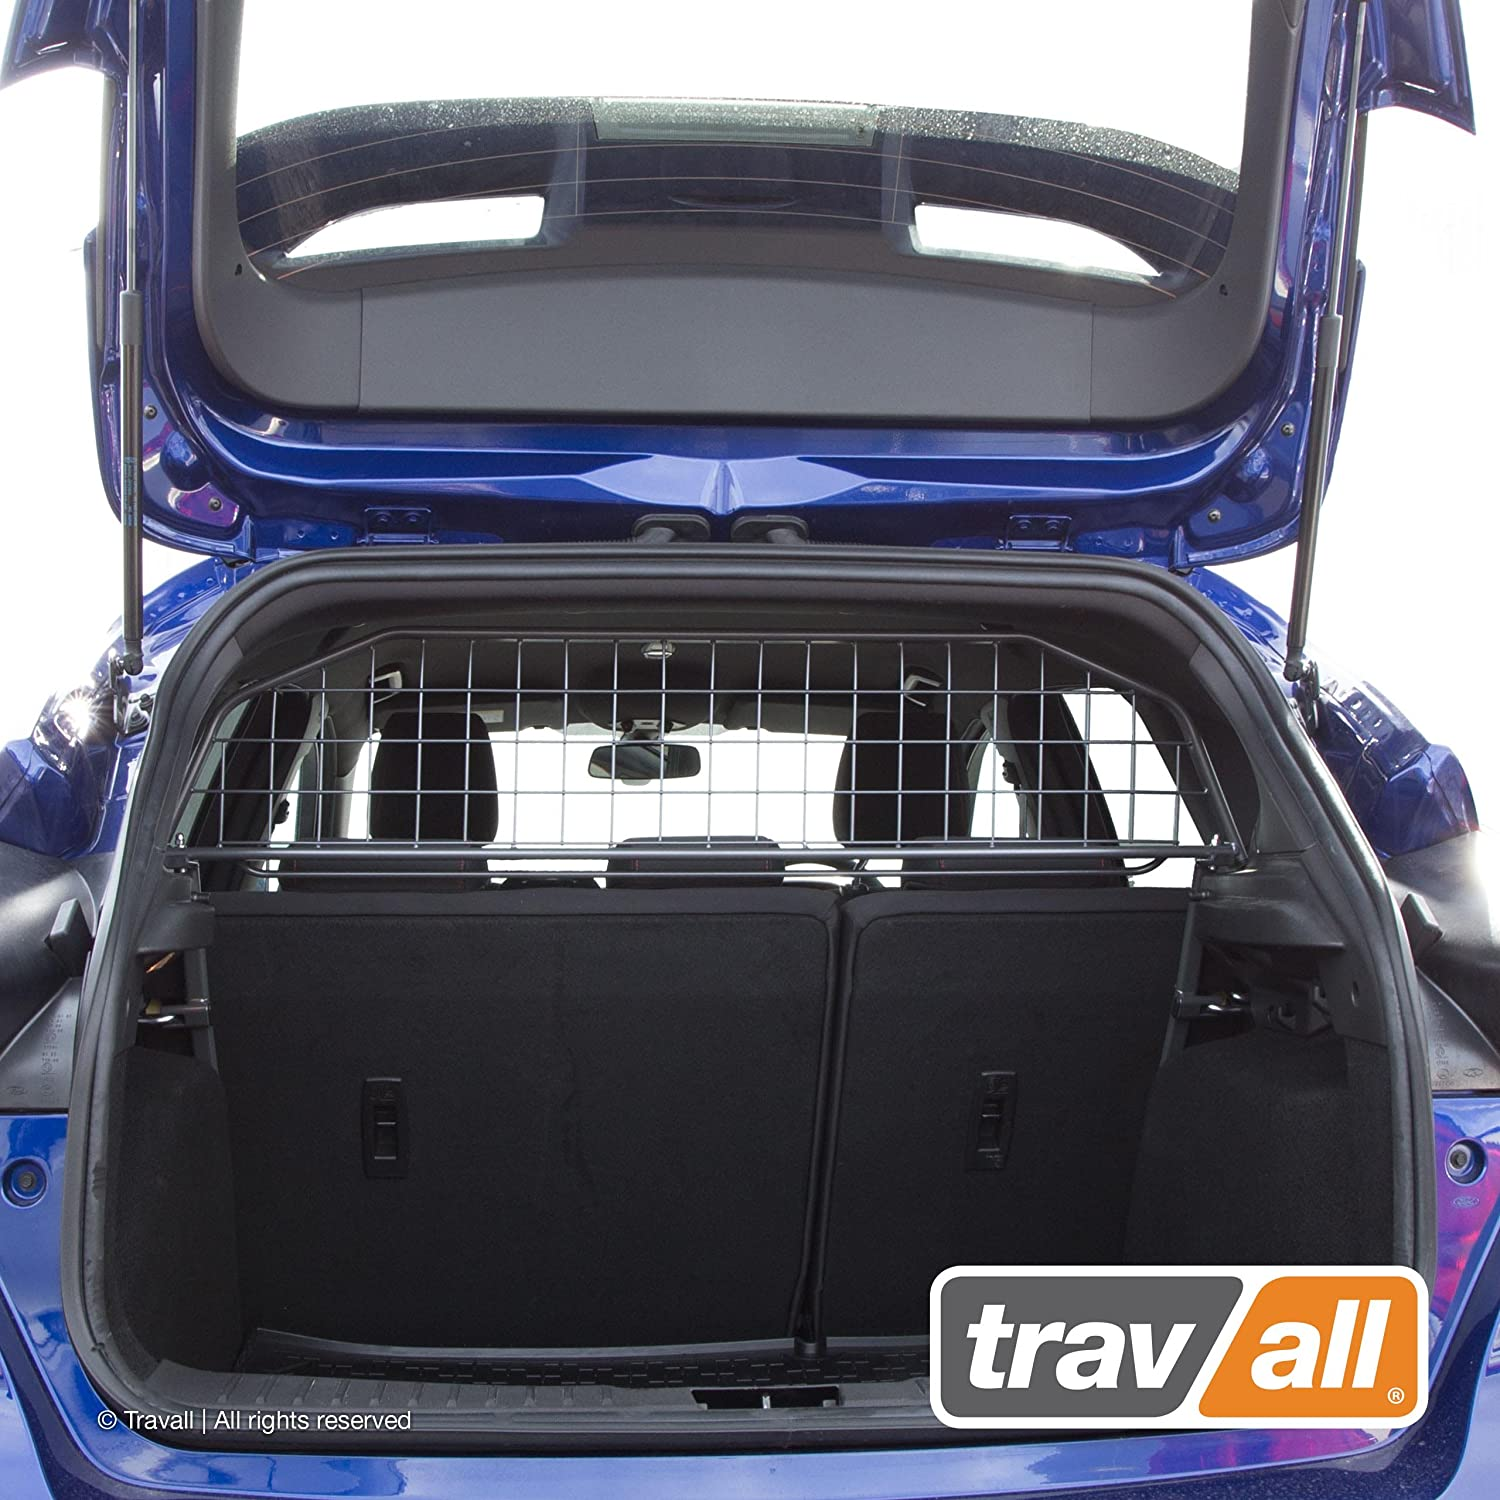 Travall Guard Compatible with Ford Focus 2010-2018 TDG1302 – Rattle-Free Luggage and Pet Barrier